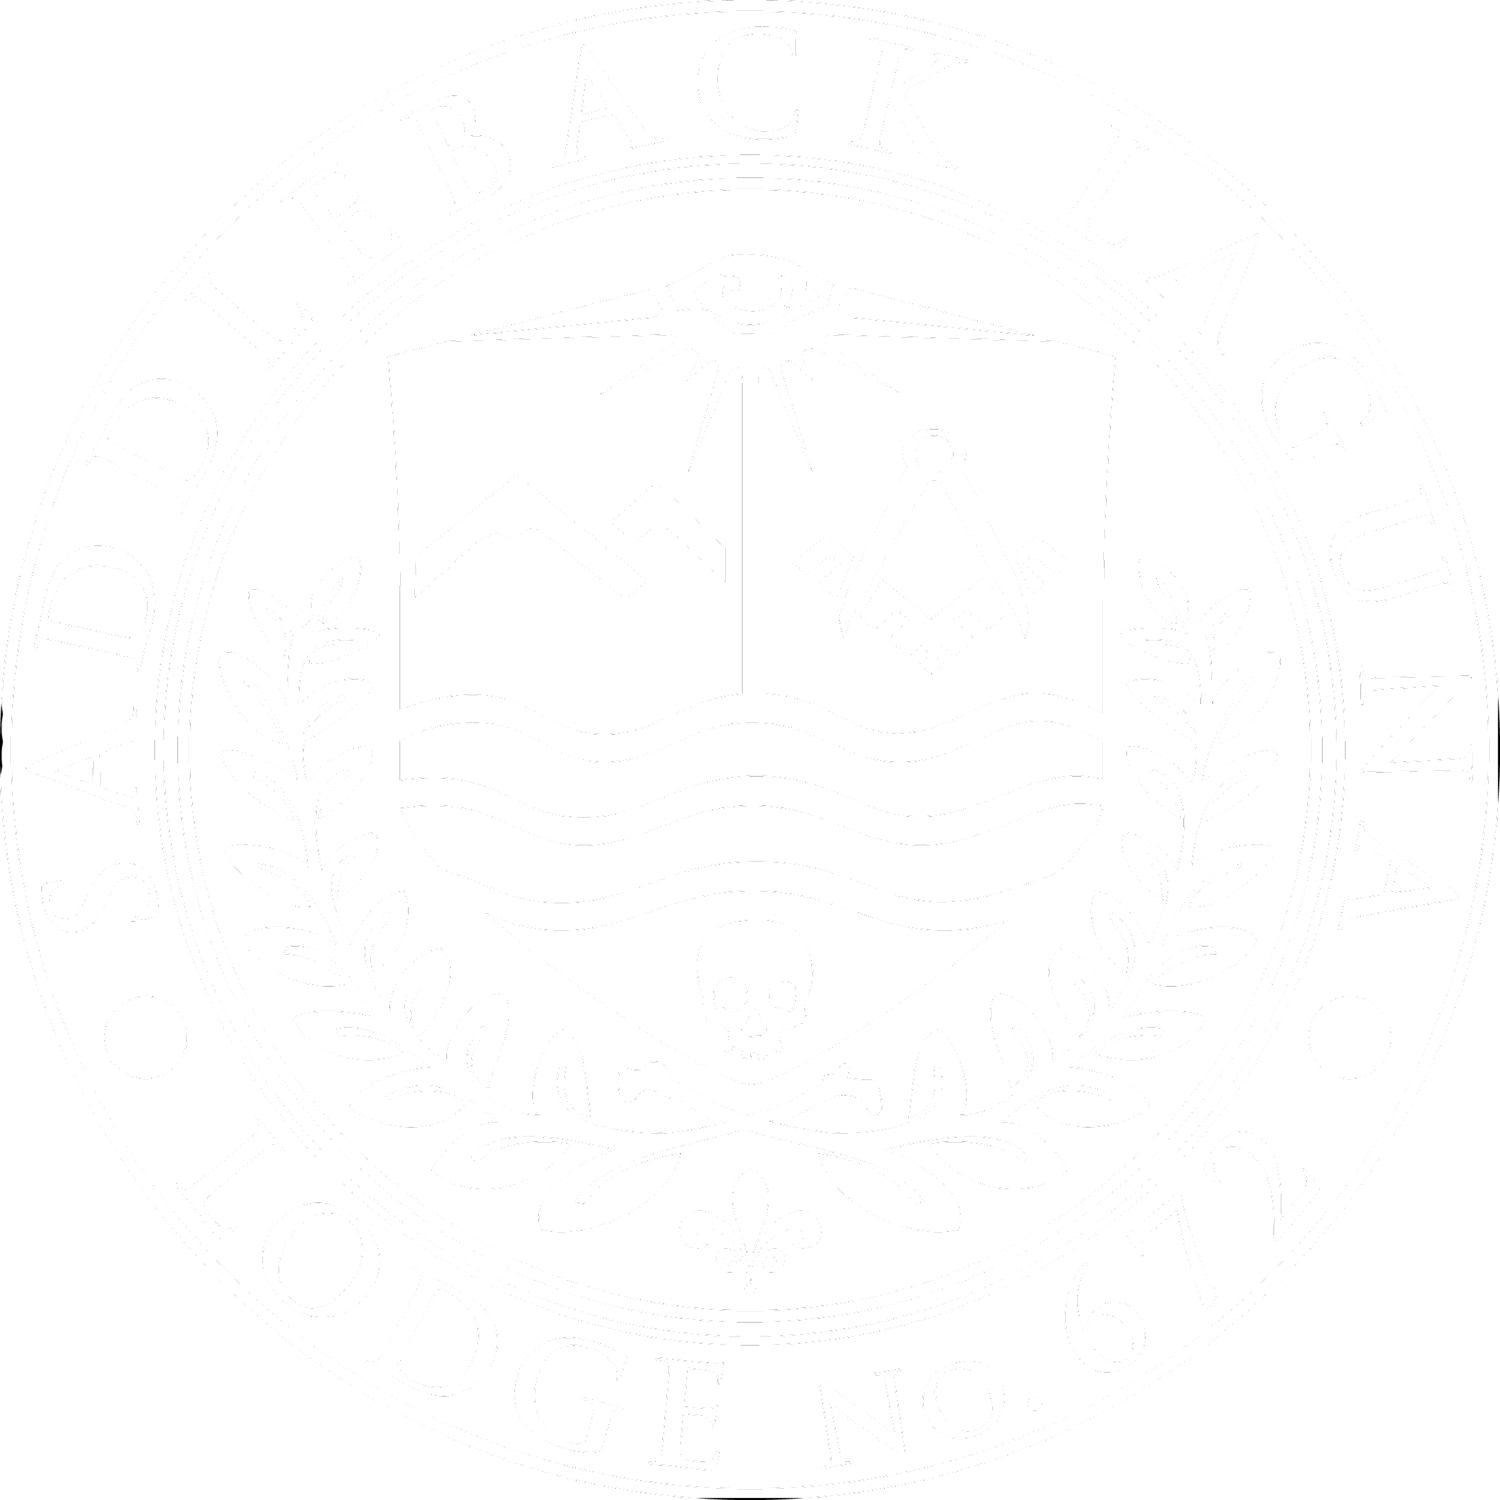 Saddleback Laguna Lodge No. 672